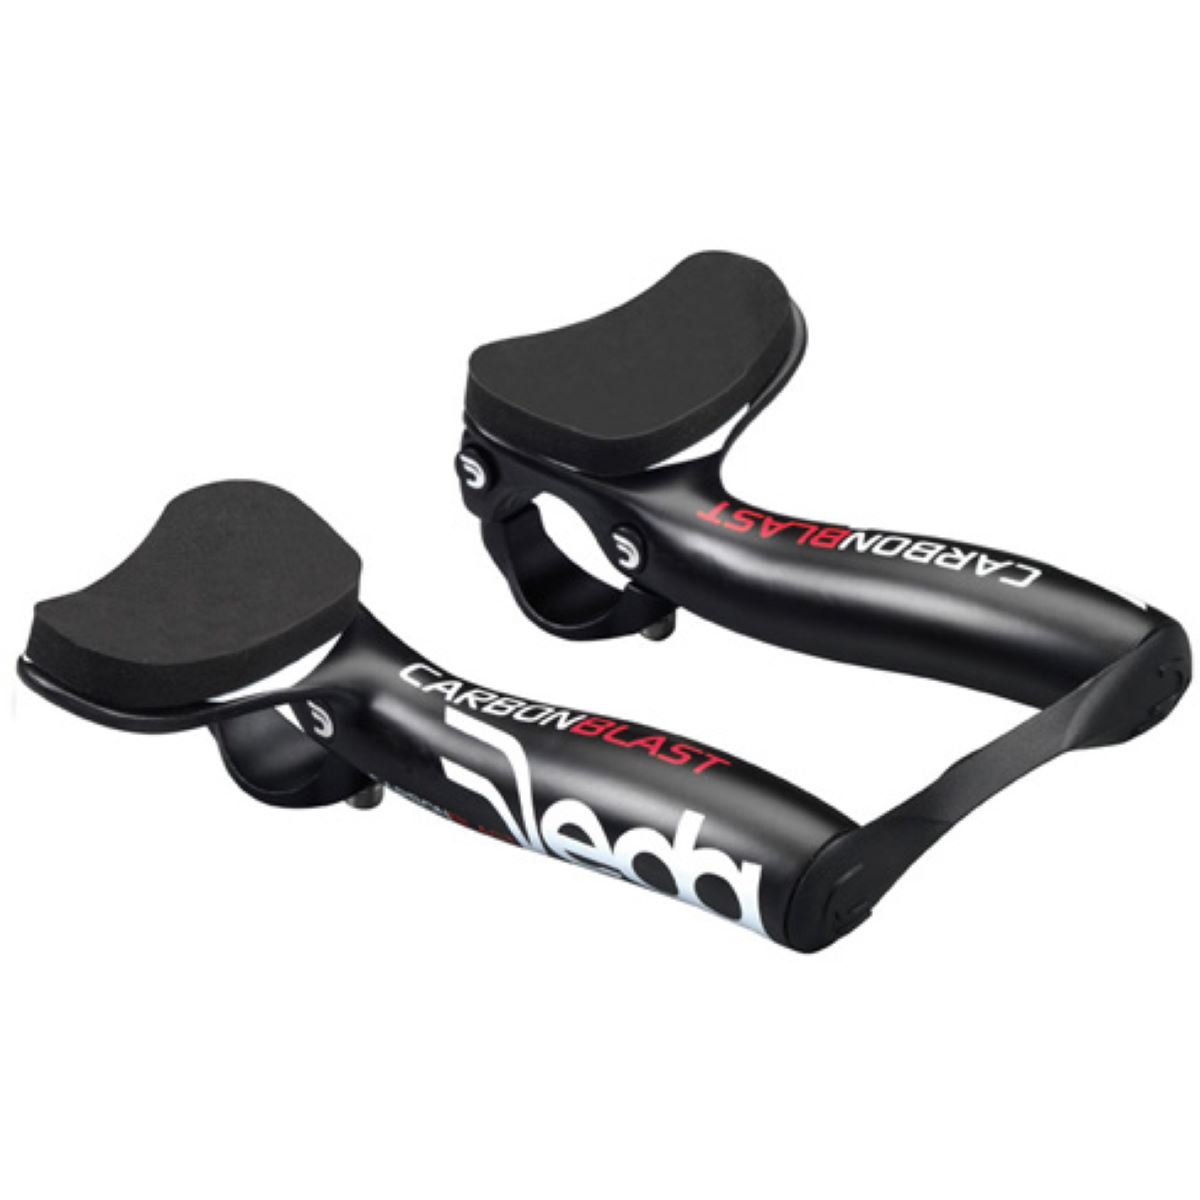 Deda Deda Carbon Blast Clip-on Tri / Time Trial Bars   Aero Bars